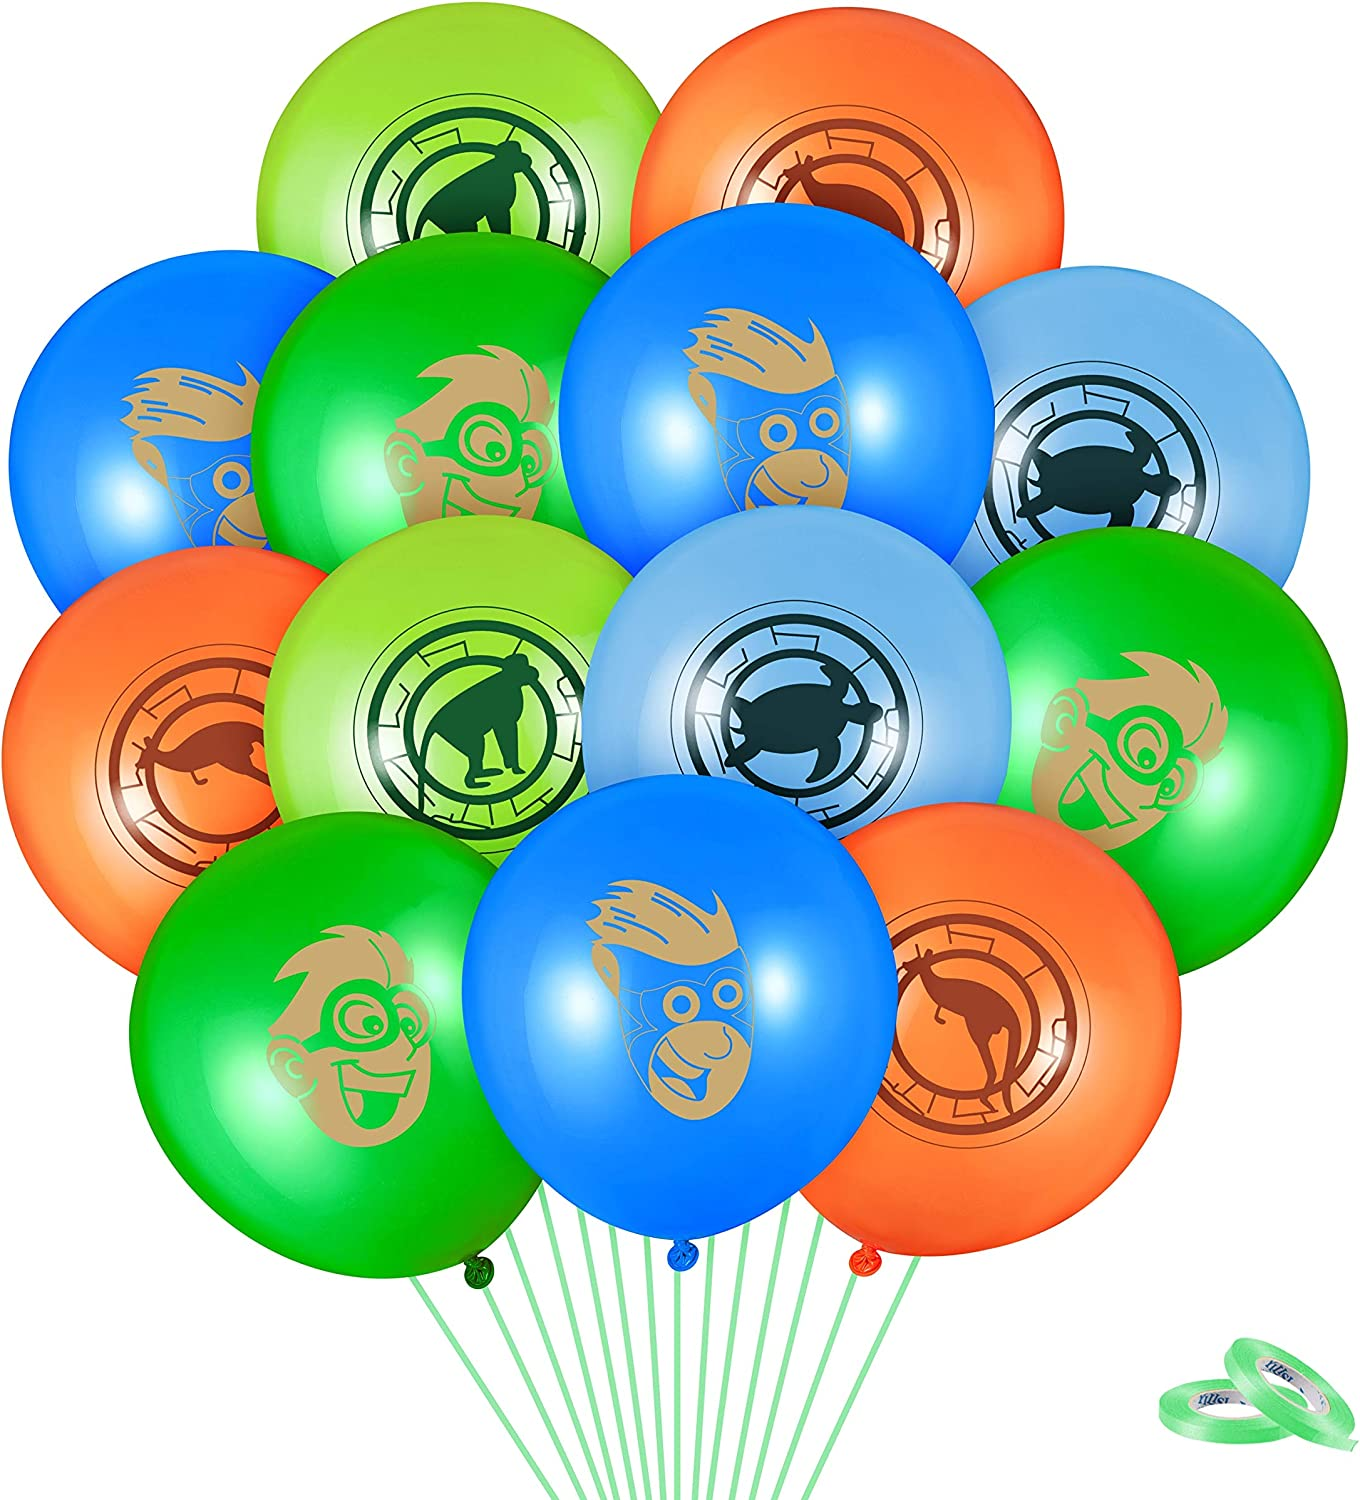 HAOORYX 50Pcs Wild Creature Party Decoration Latex Balloons Kit with 2 Rolls Ribbon, Chris and Martin 12 Inches Latex Printed Balloon for kids Theme birthday Parties, Baby Shower Decor Favor Supplies